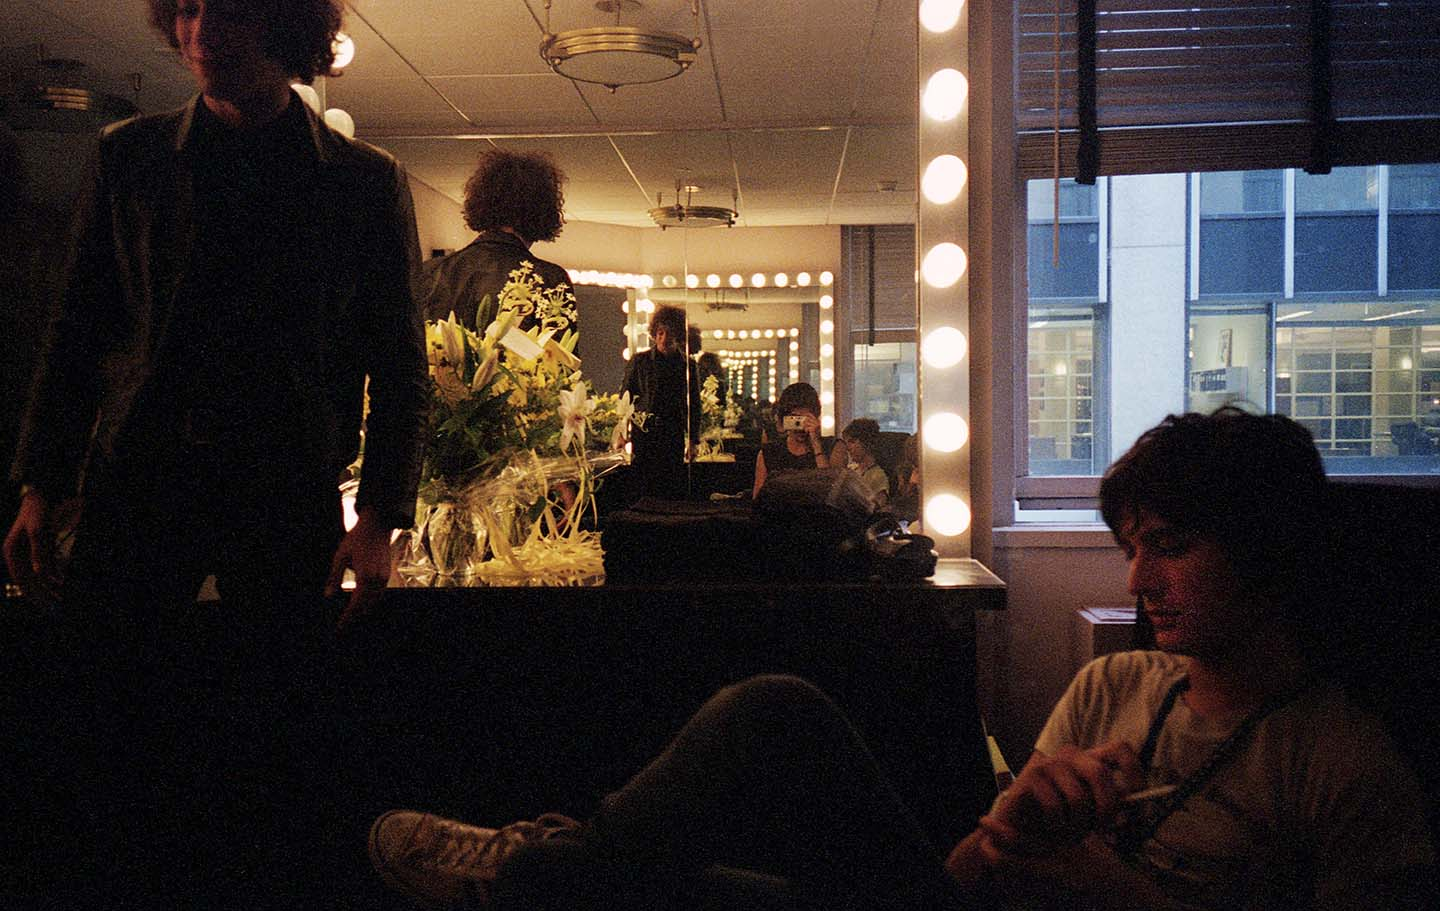 The Strokes backstage at Radio City: NYC, 2002